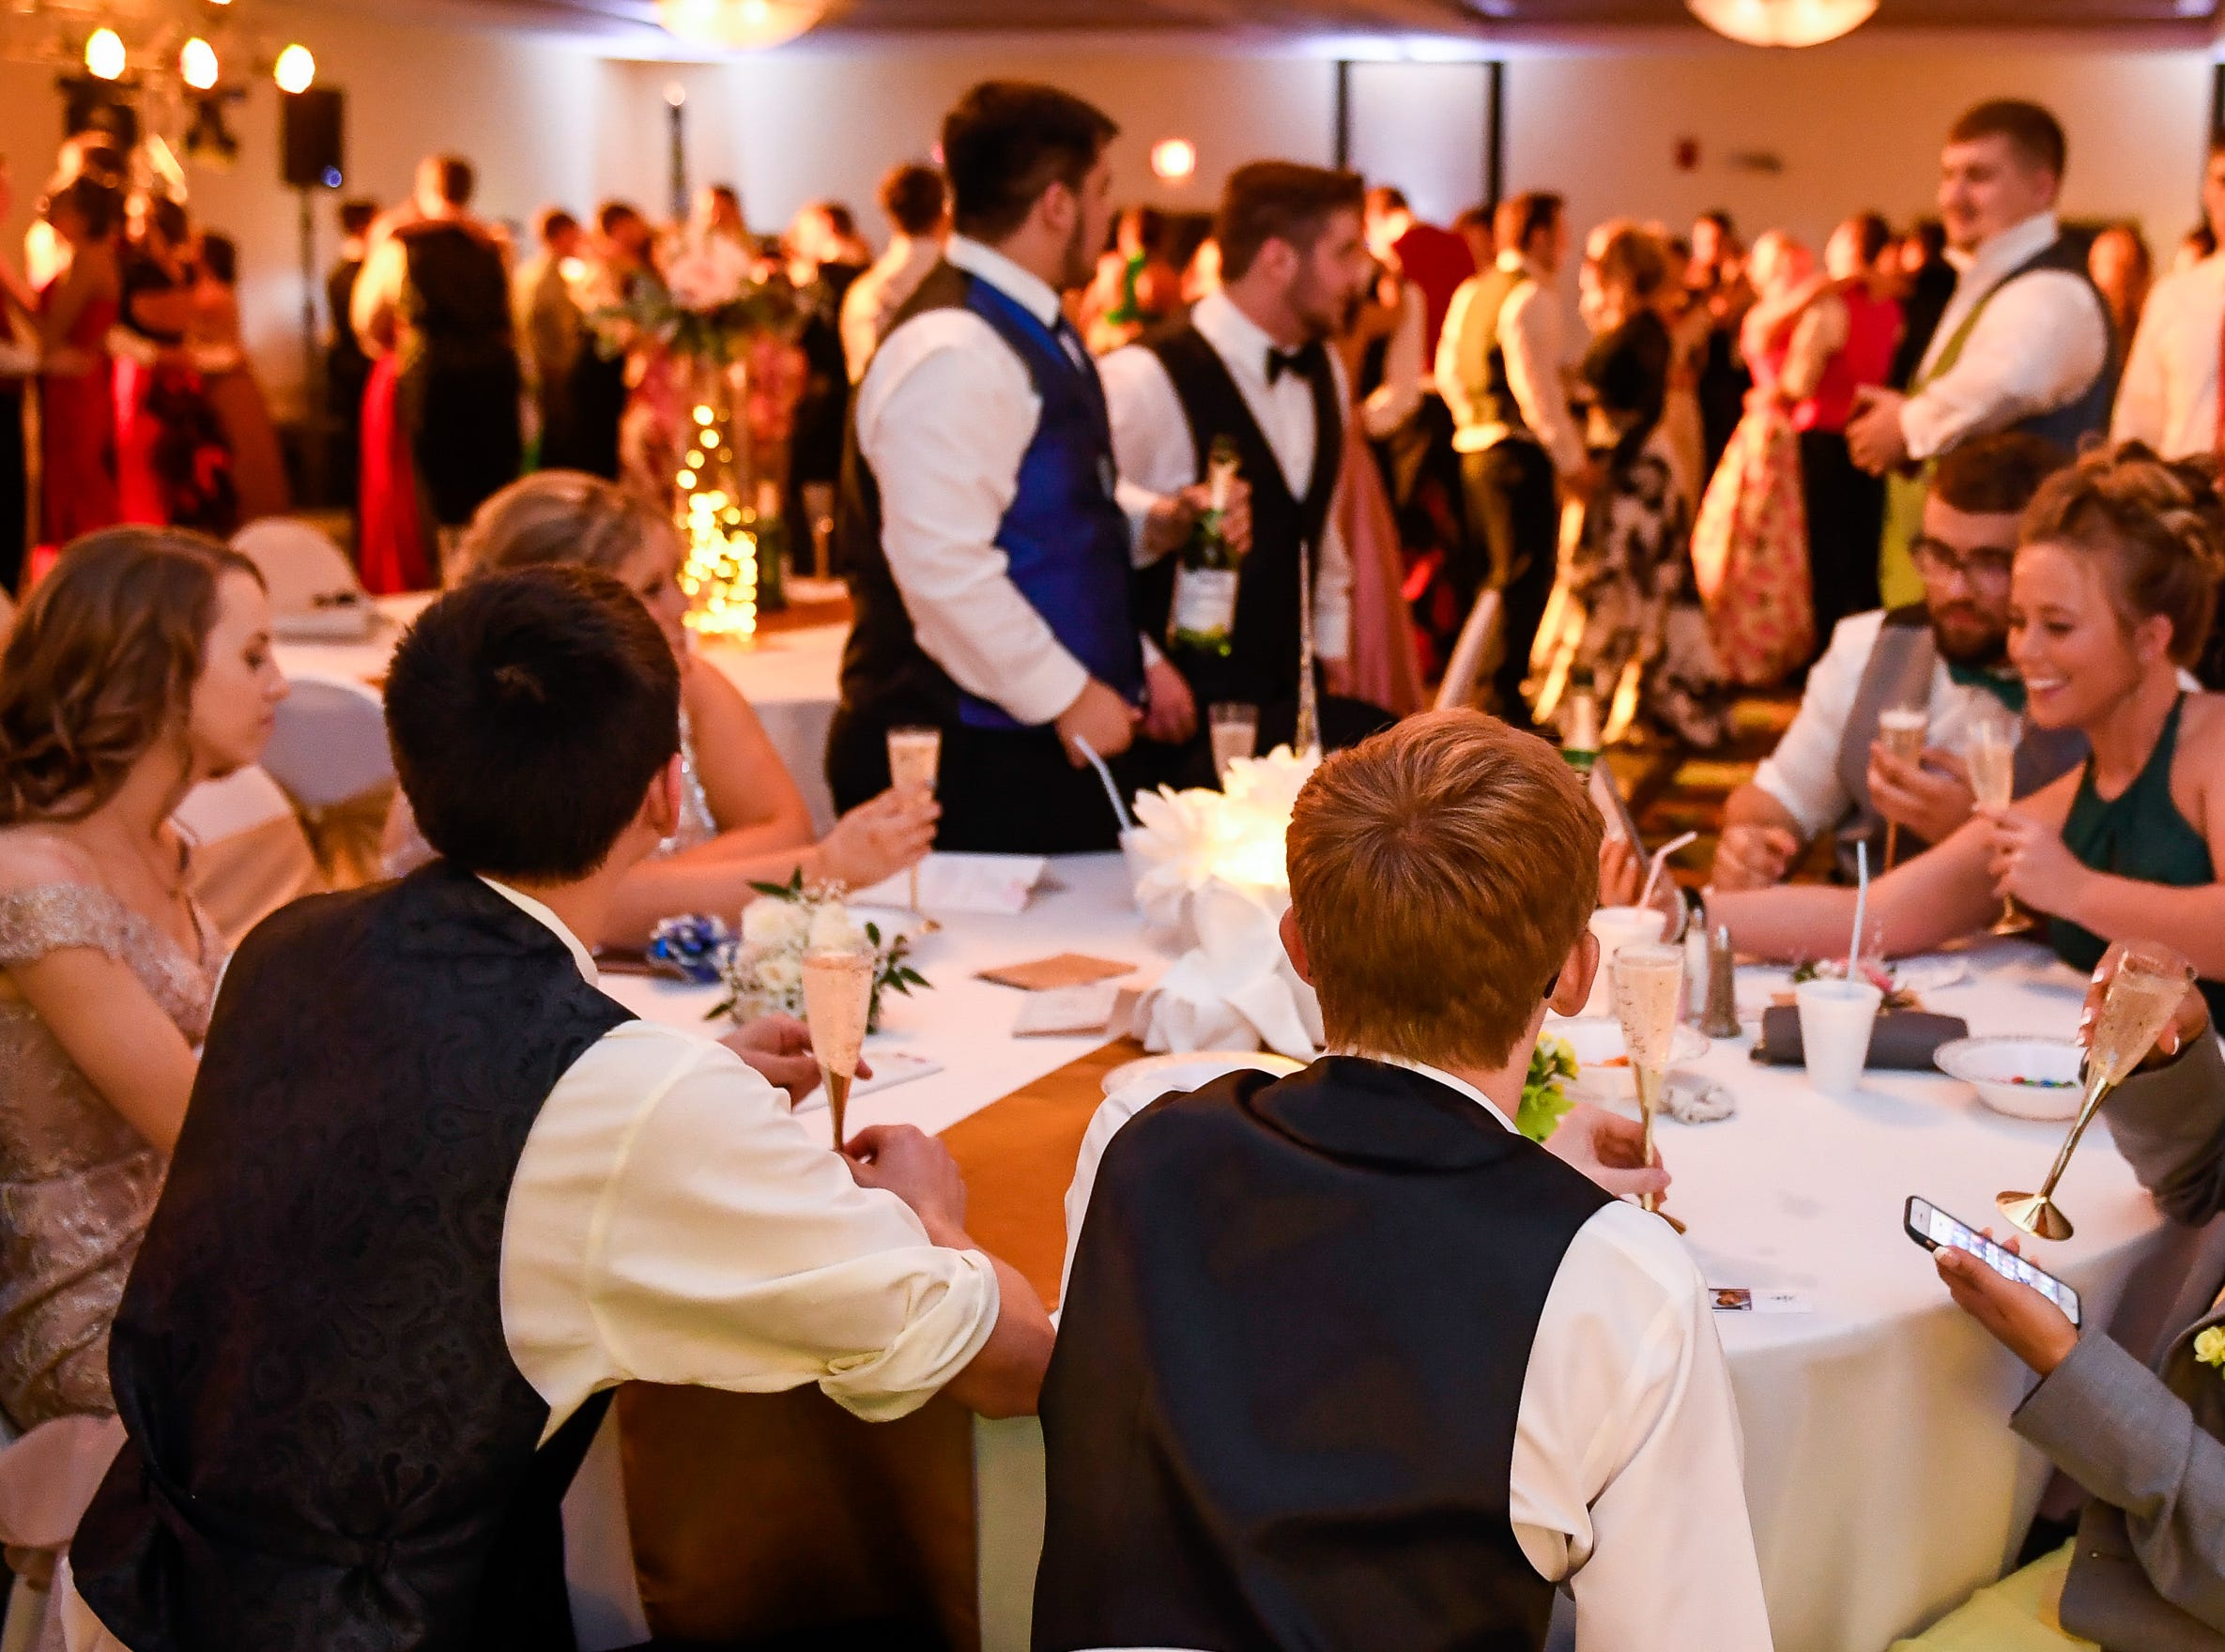 Taking a break between dances at the Tecumseh High School prom held at the Airport Holiday Inn Friday, April 26, 2019.